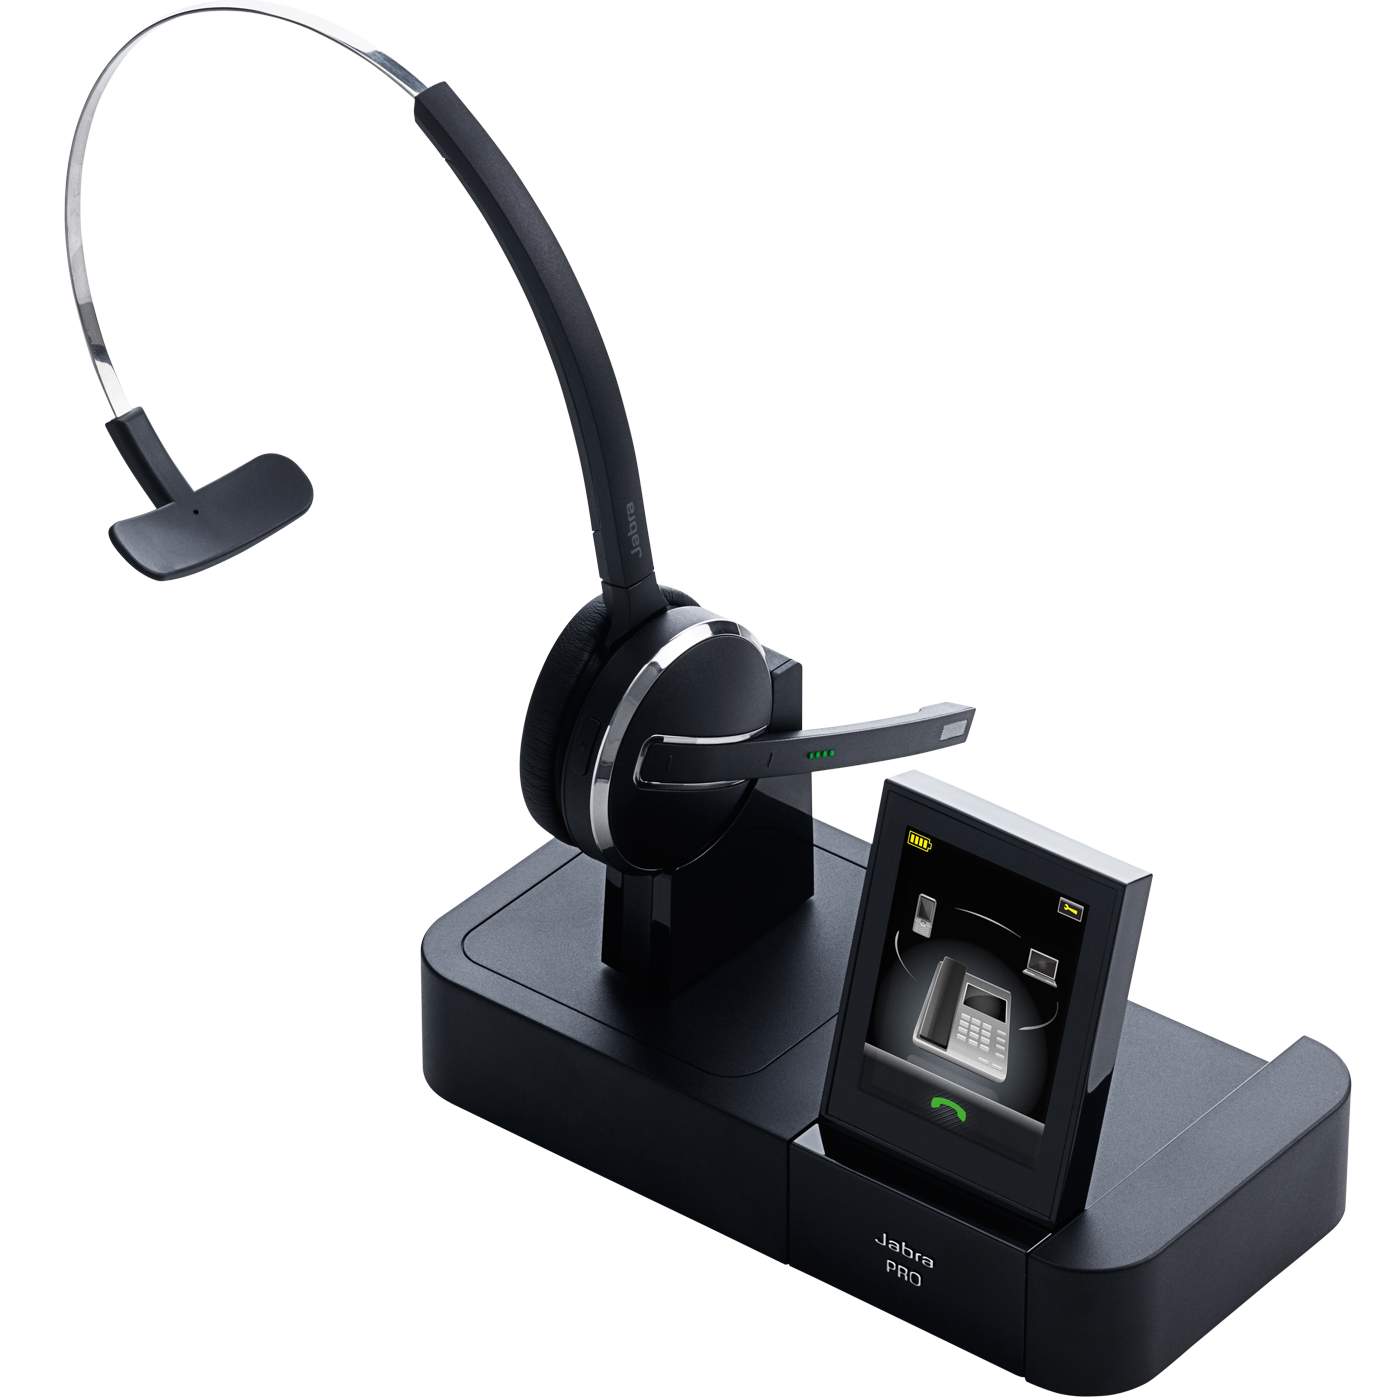 Jabra Pro 9470 Support Usb Headset With Microphone Wiring Diagram